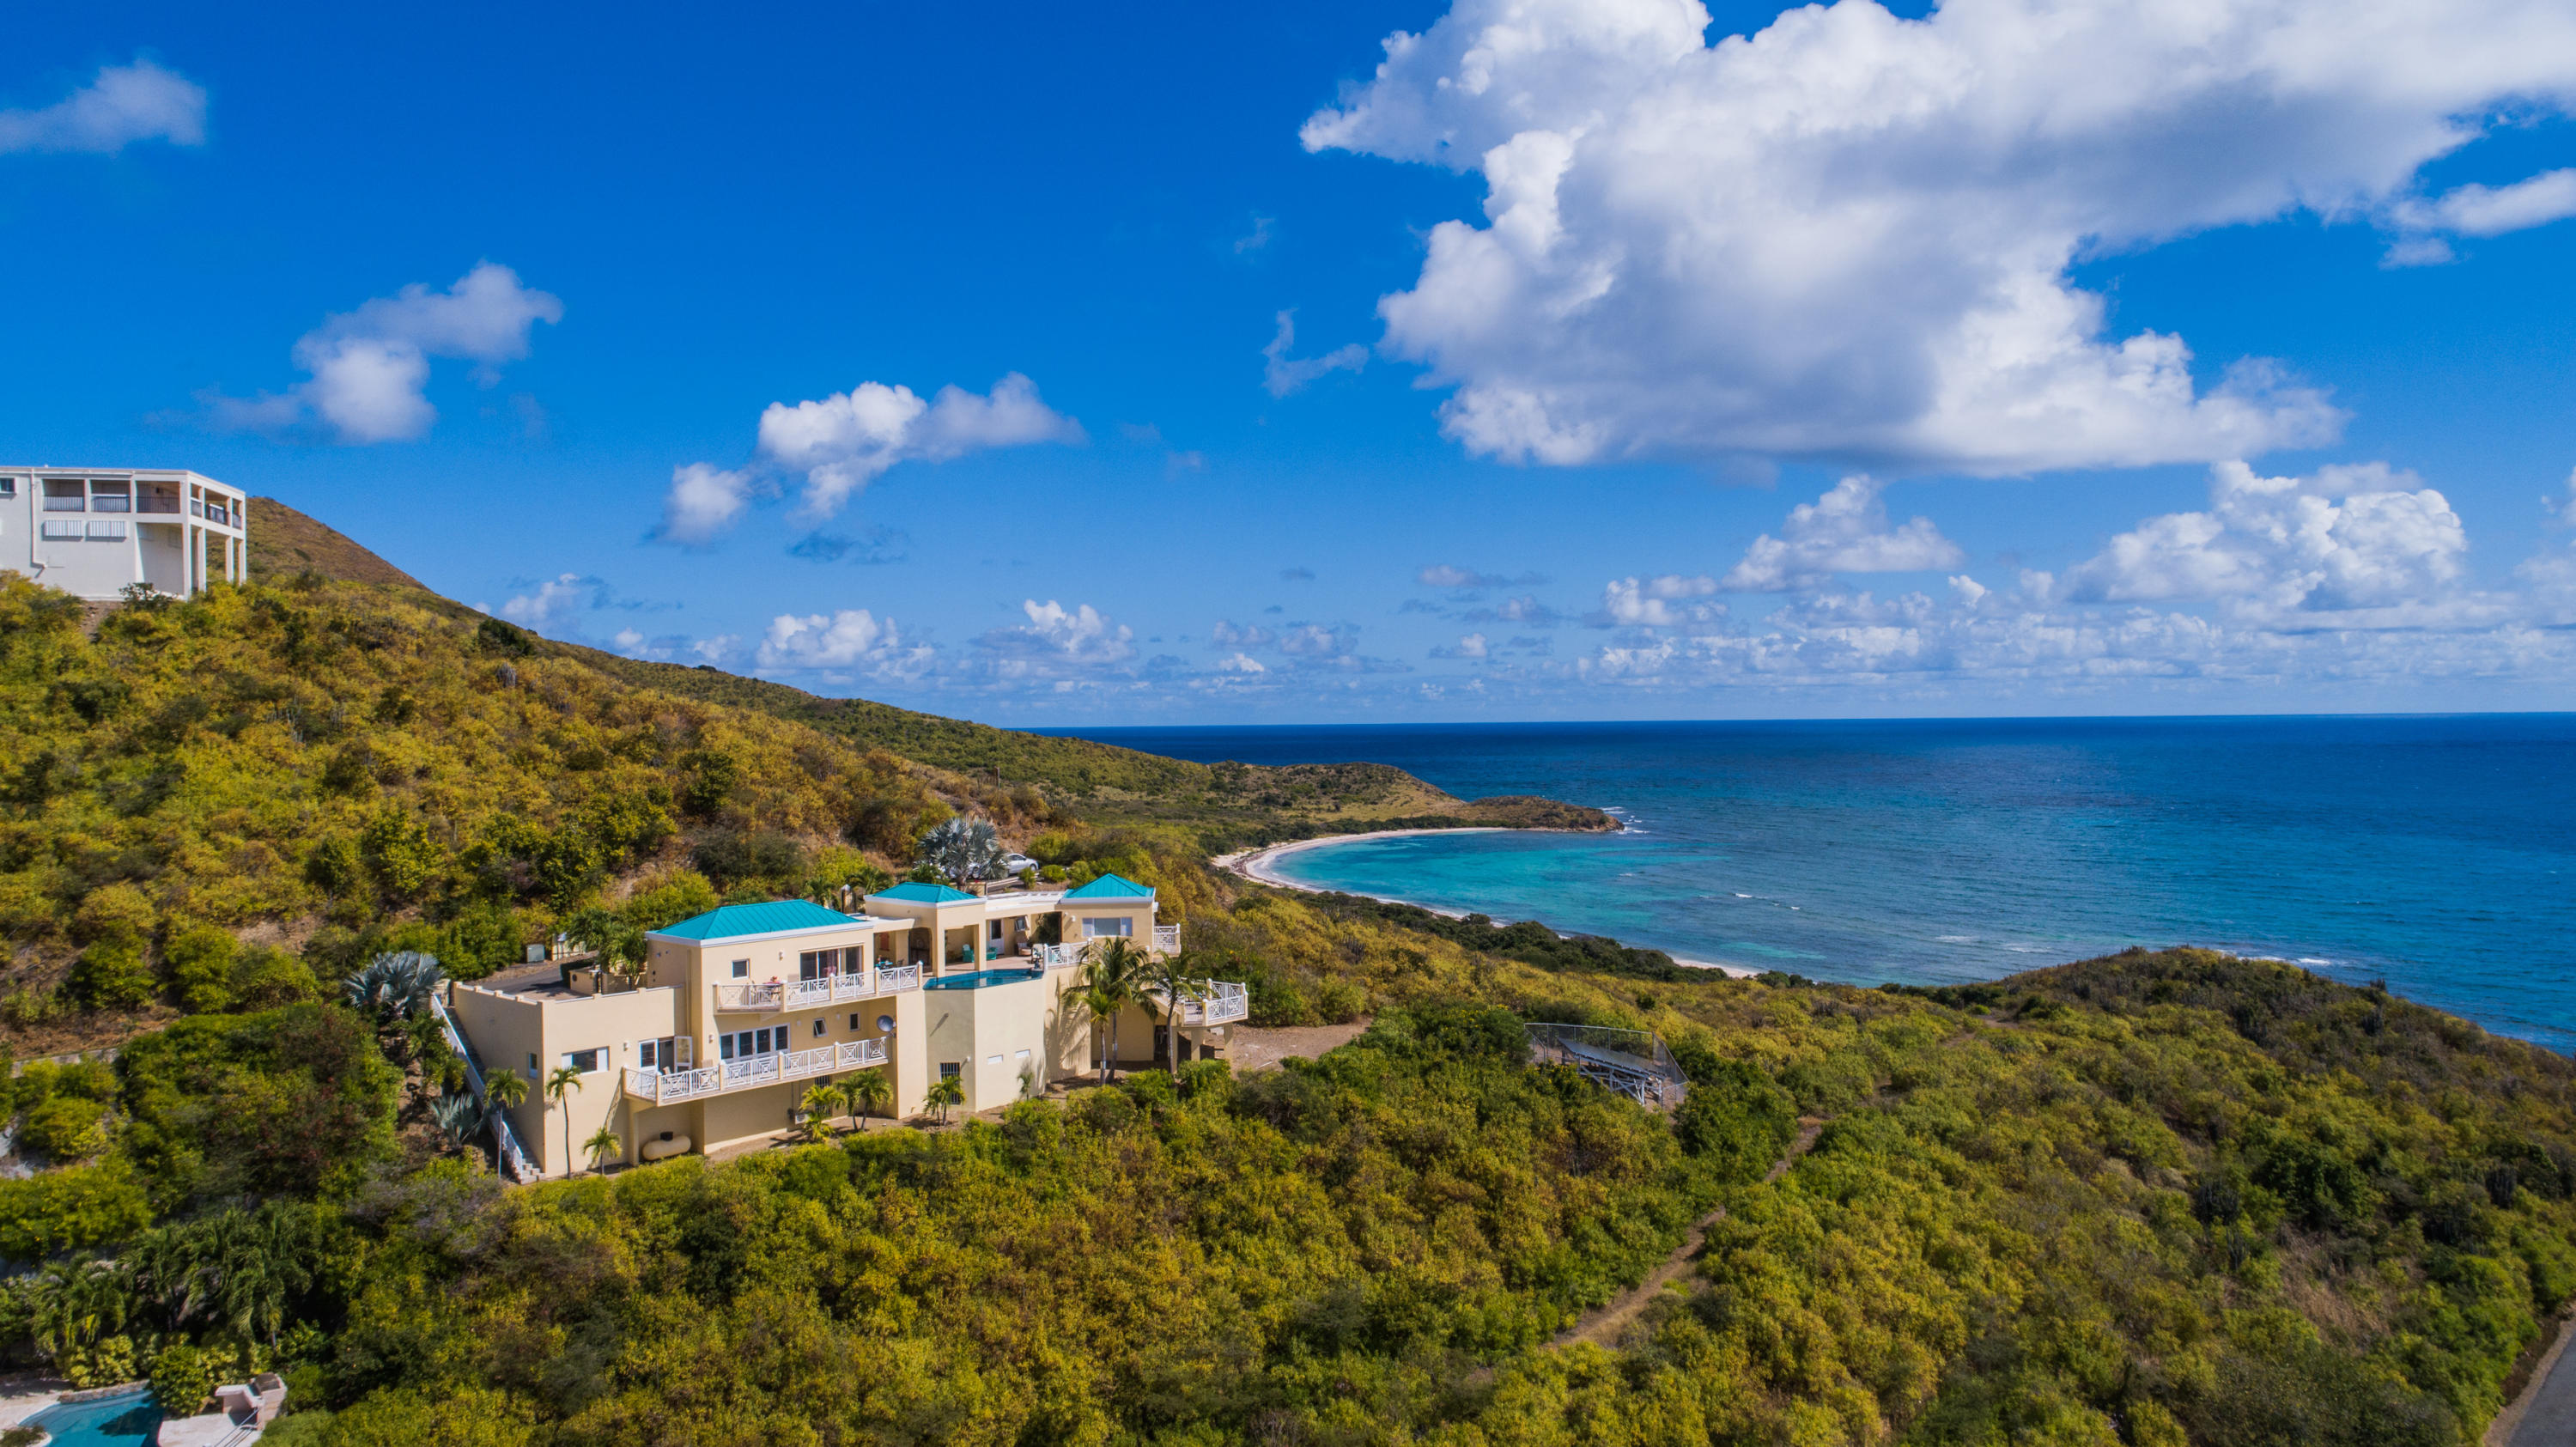 Single Family Home for Sale at Rem 125 South Grapetree EB Rem 125 South Grapetree EB St Croix, Virgin Islands 00820 United States Virgin Islands